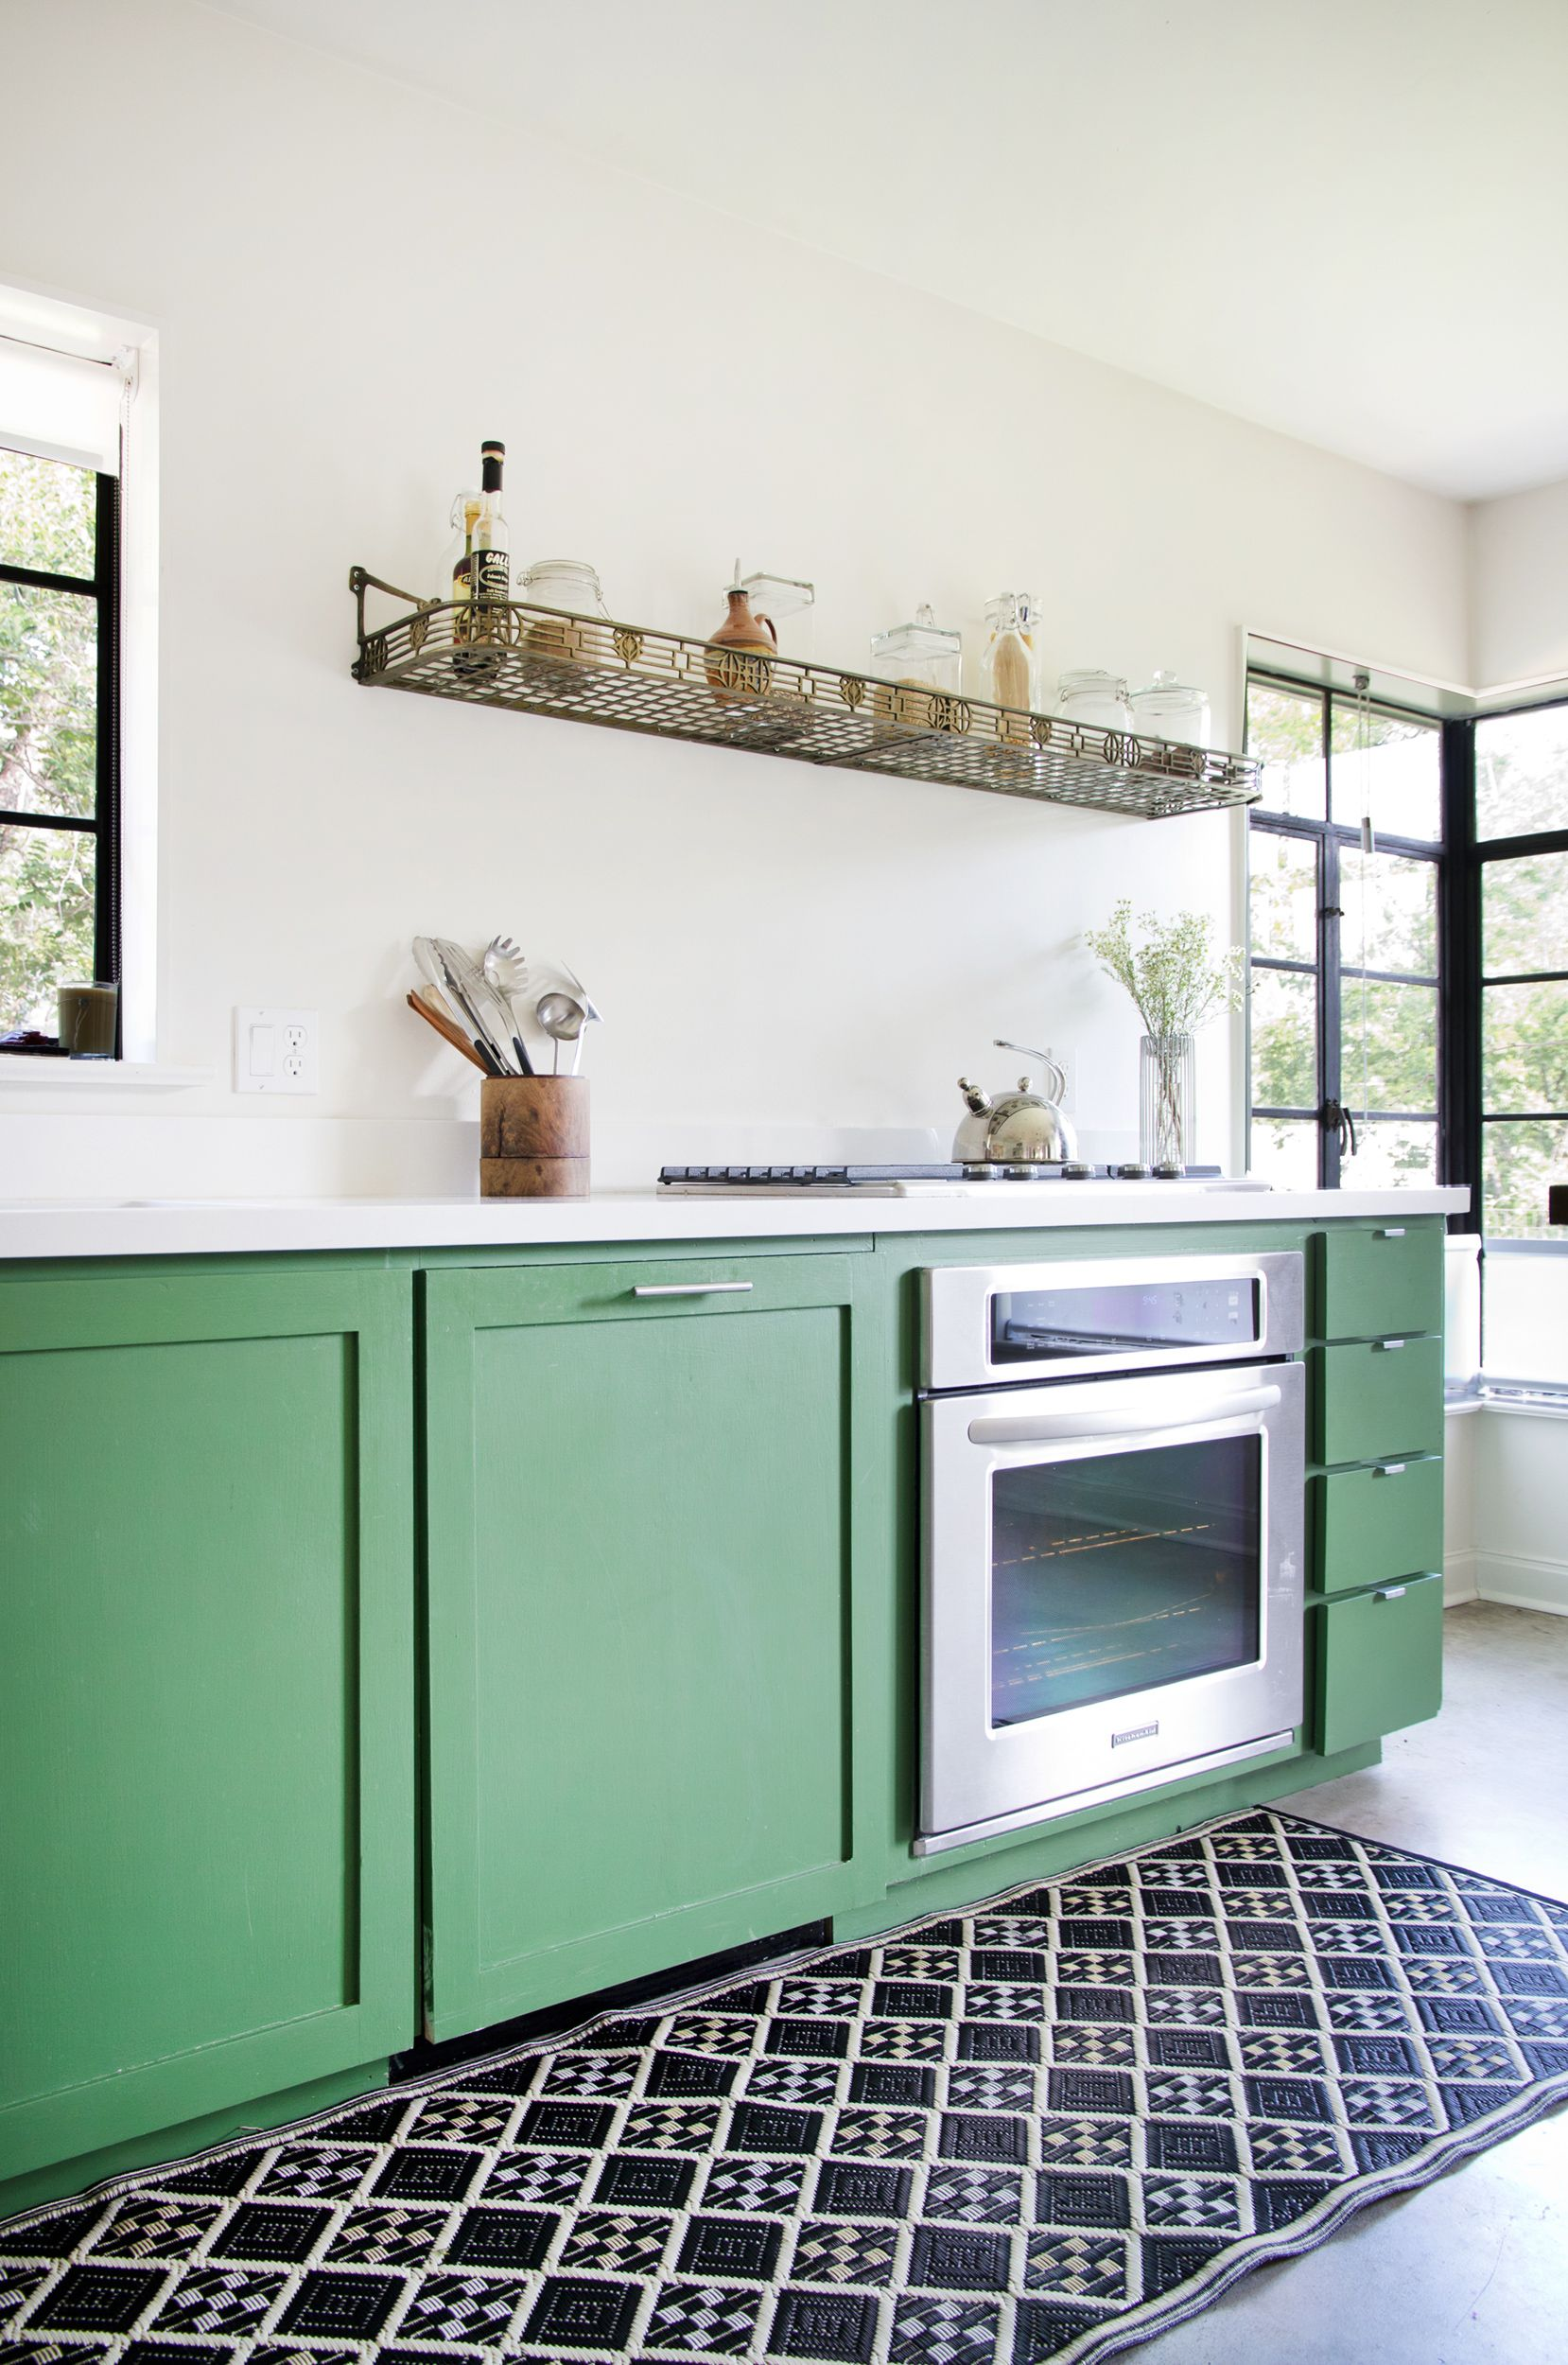 How Much Does It Cost to Paint Kitchen Cabinets? | Pinterest ...